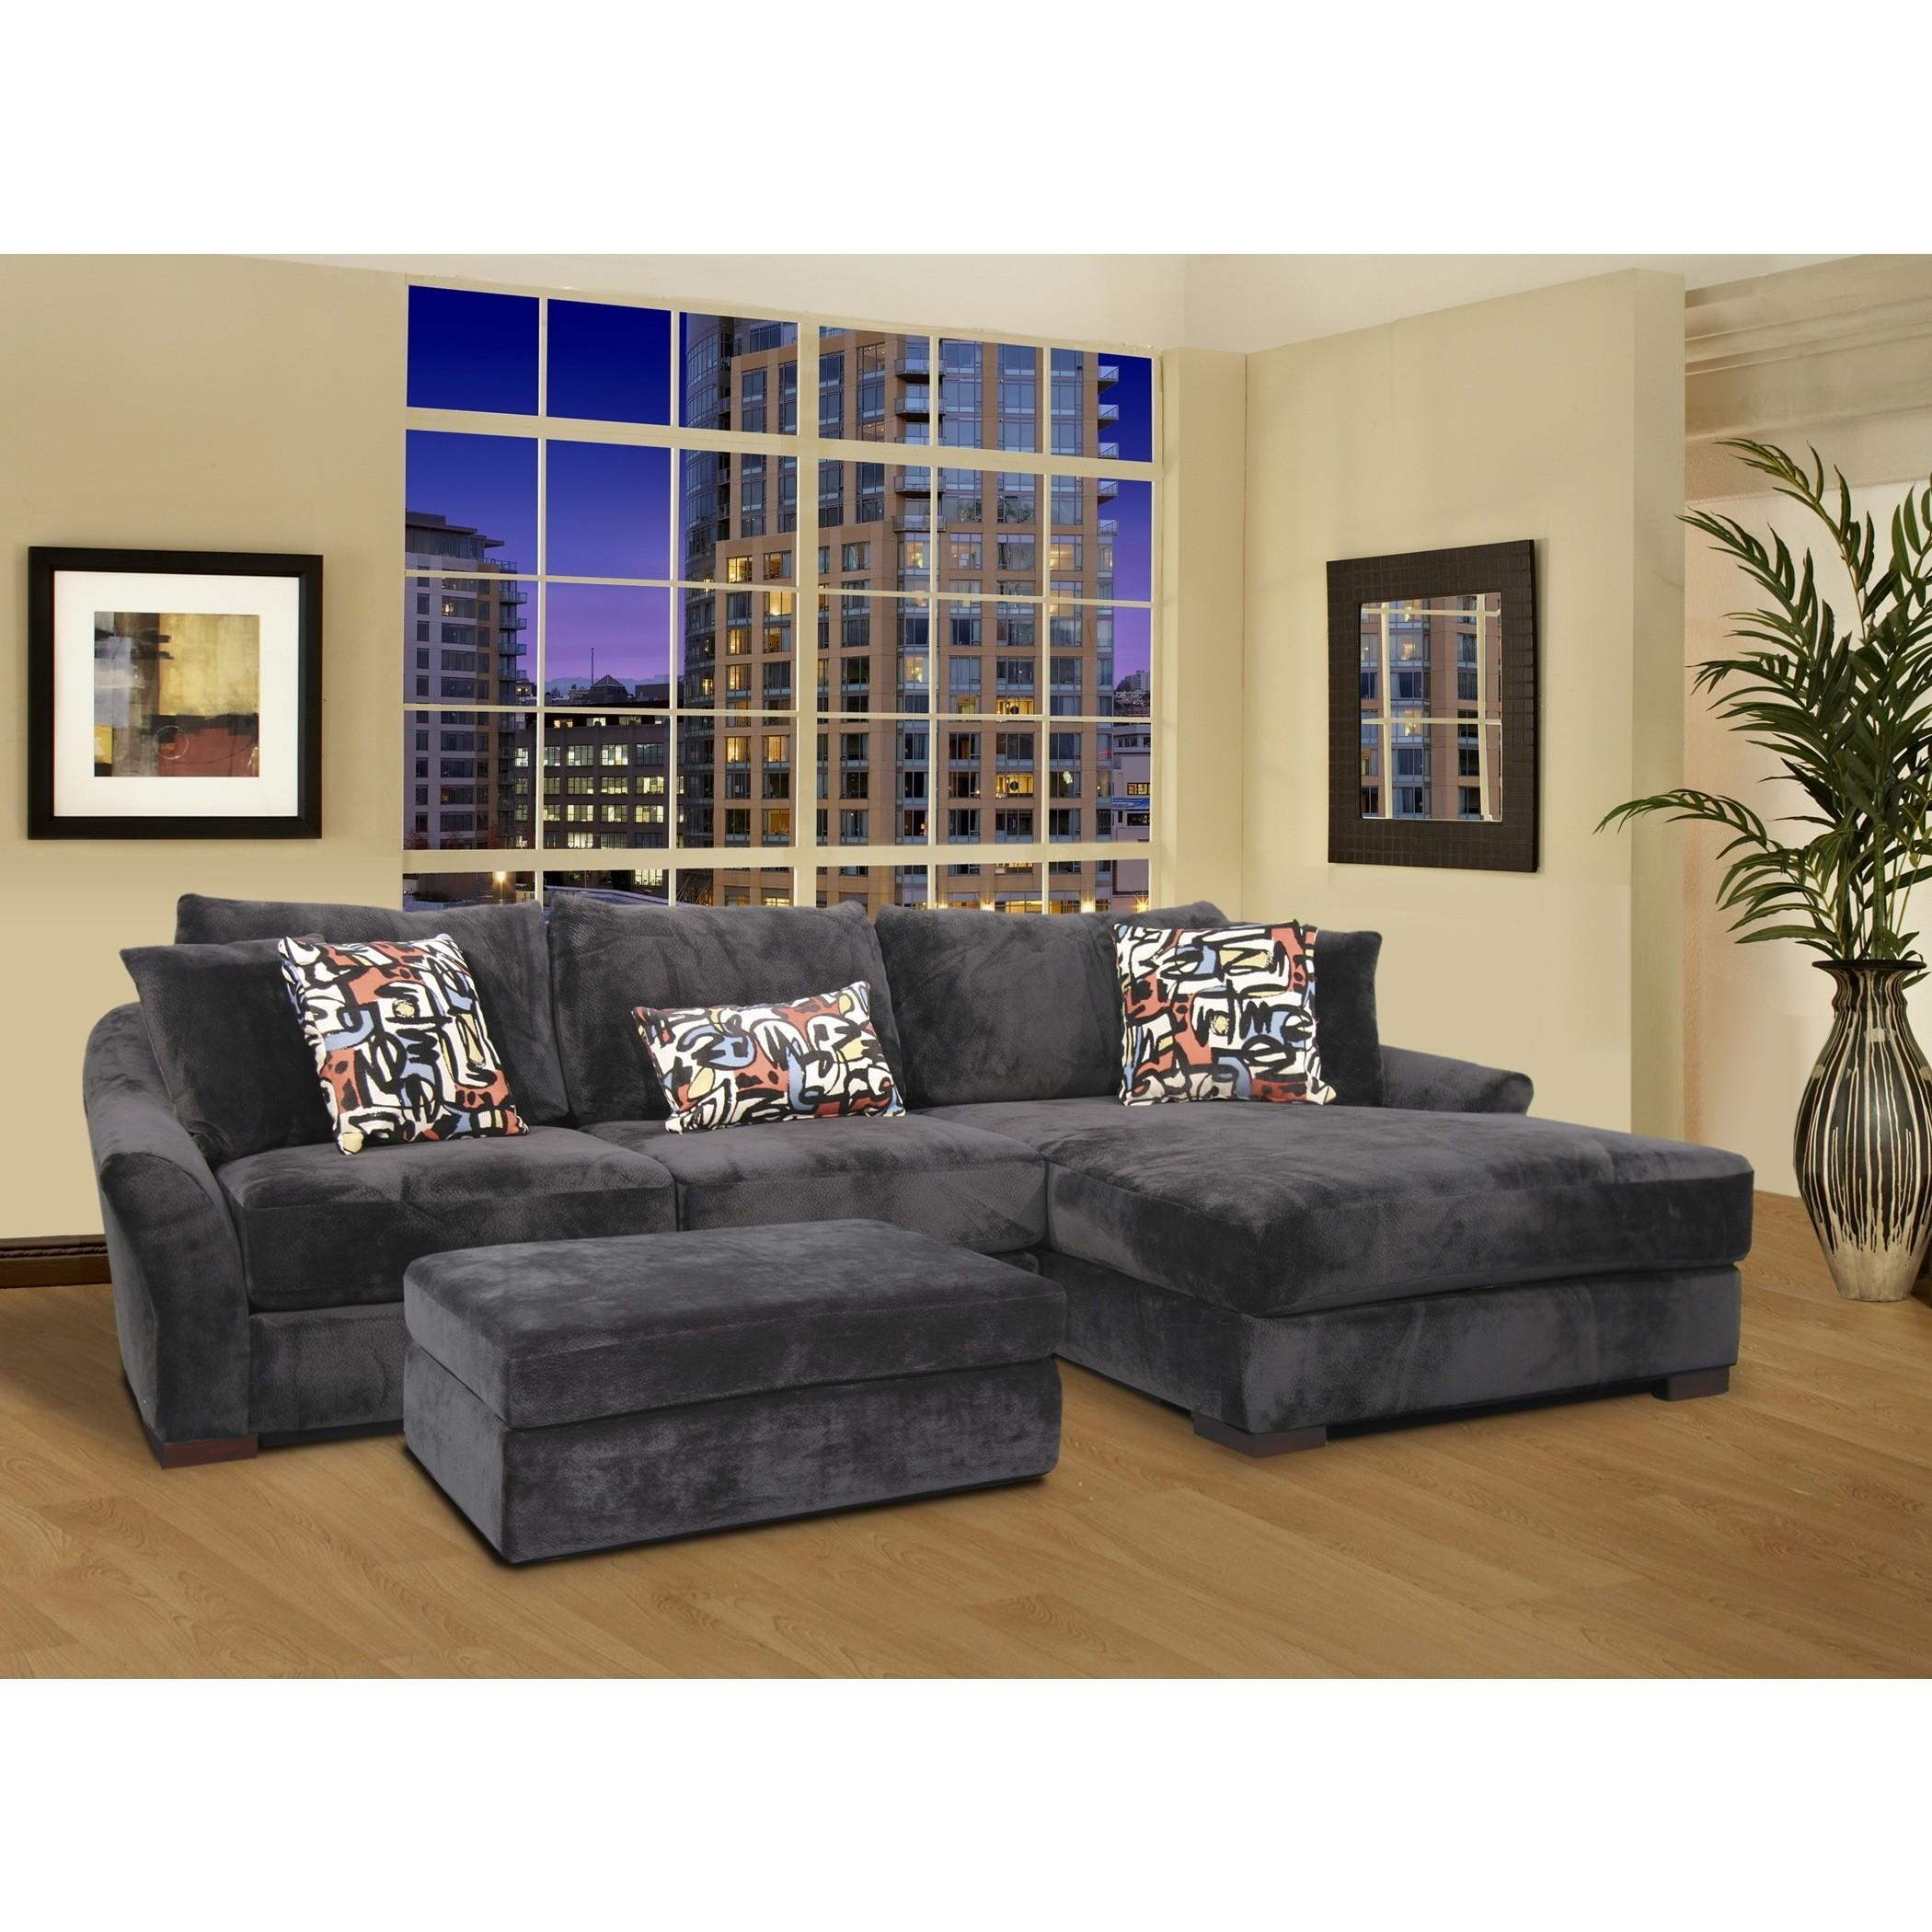 L Shape Gray Velvet Sectional Sleeper Sofa With Left Chaise Lounge In L Shaped Sectional Sleeper Sofa (View 13 of 20)